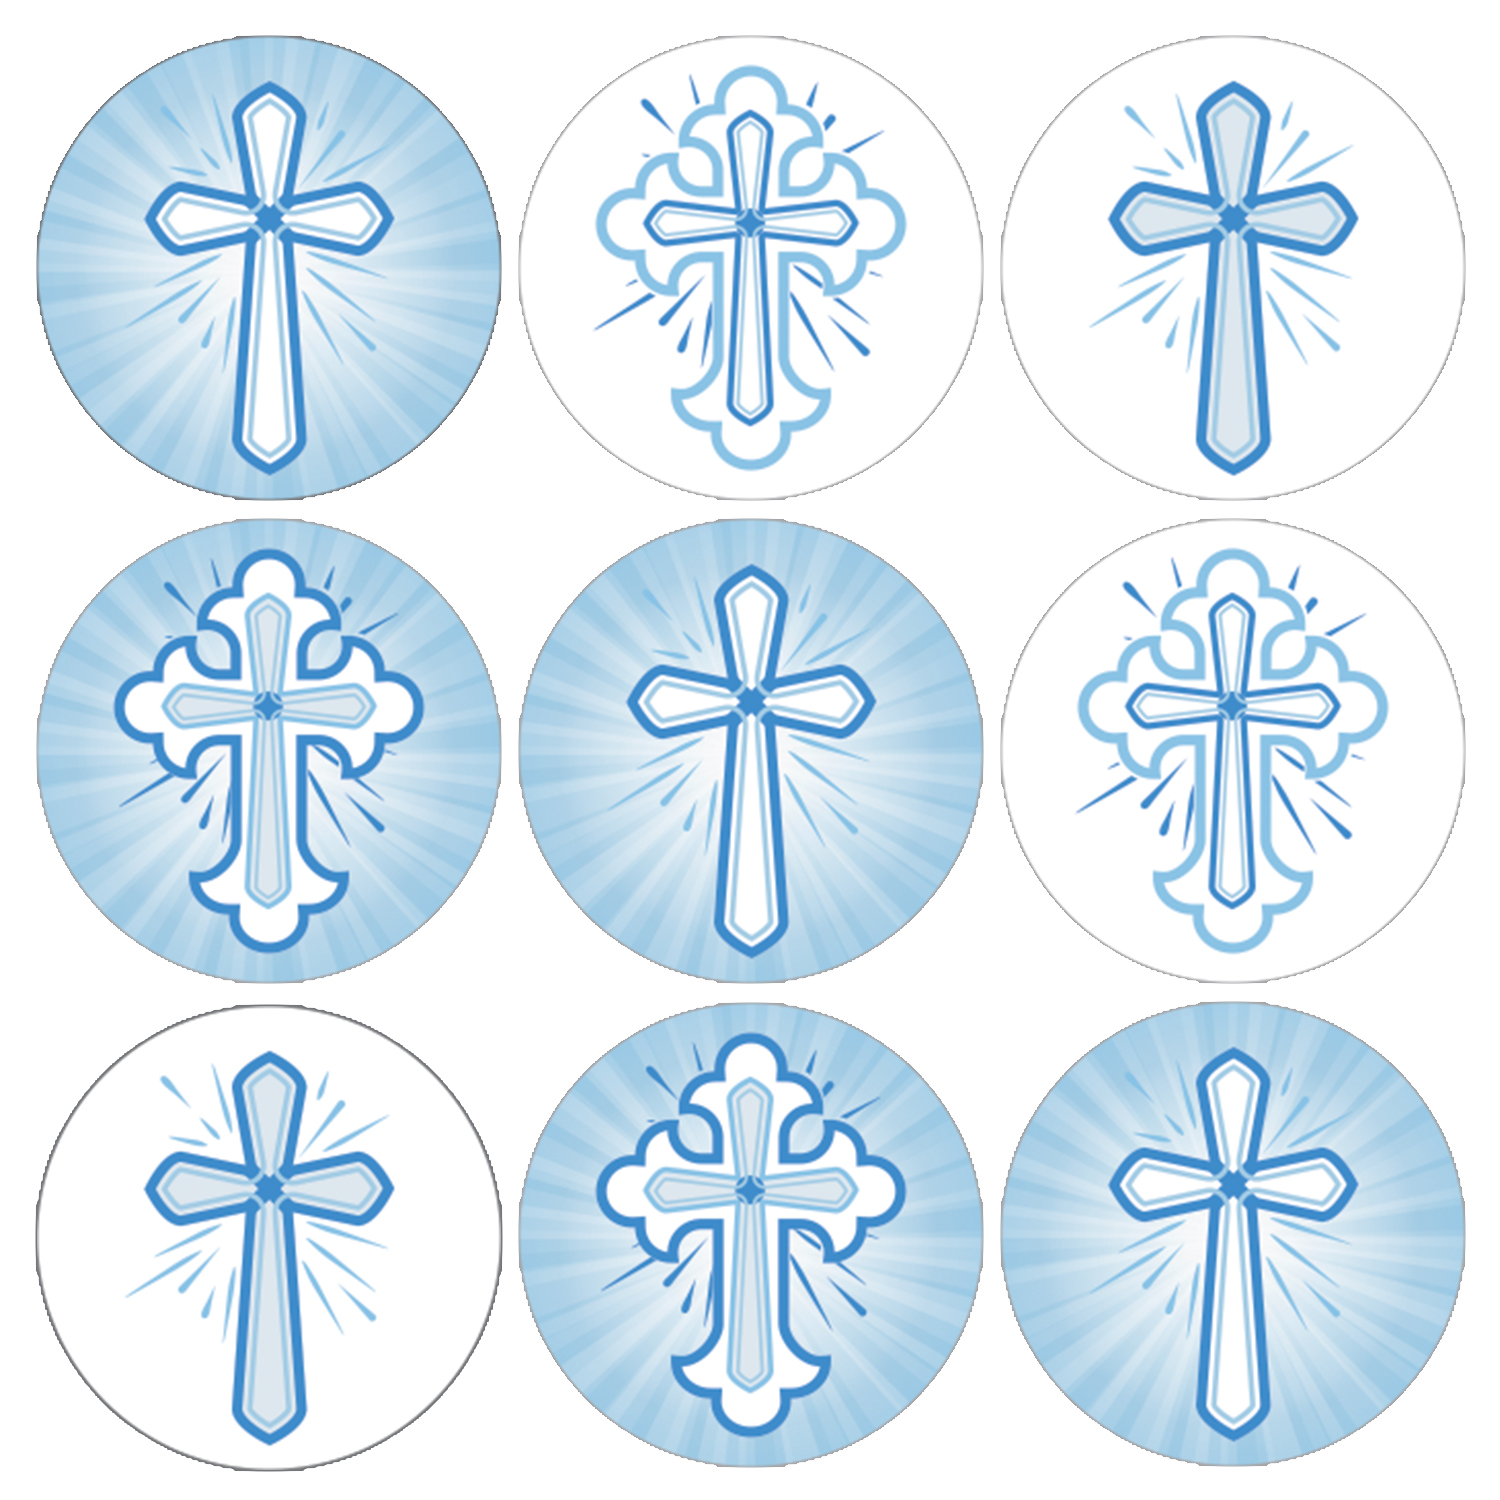 Baby Boy Baptism Favor Stickers - 216ct - Religious Christian Blue Crosses - Christening First Communion Decorations Party Supplies - Set of 216 Stickers